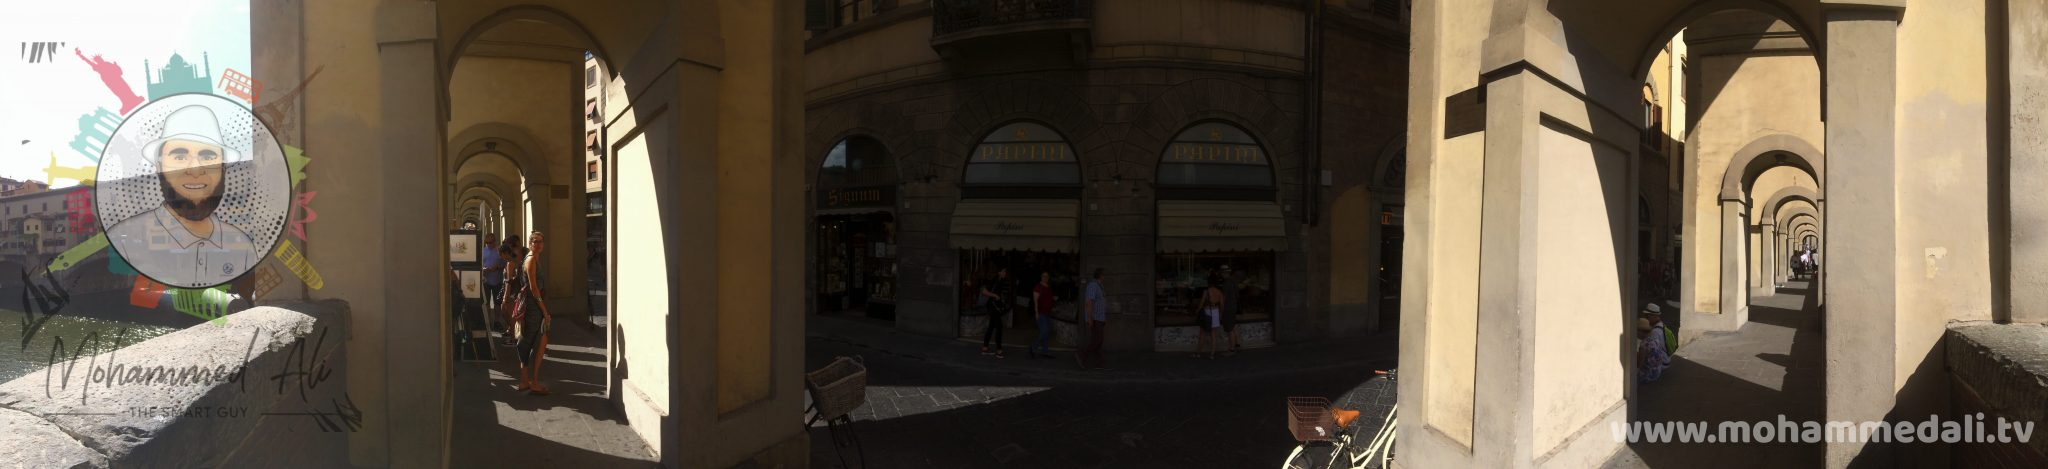 Awesome panoramic view of the river Arno and the famous Ponte Vecchio